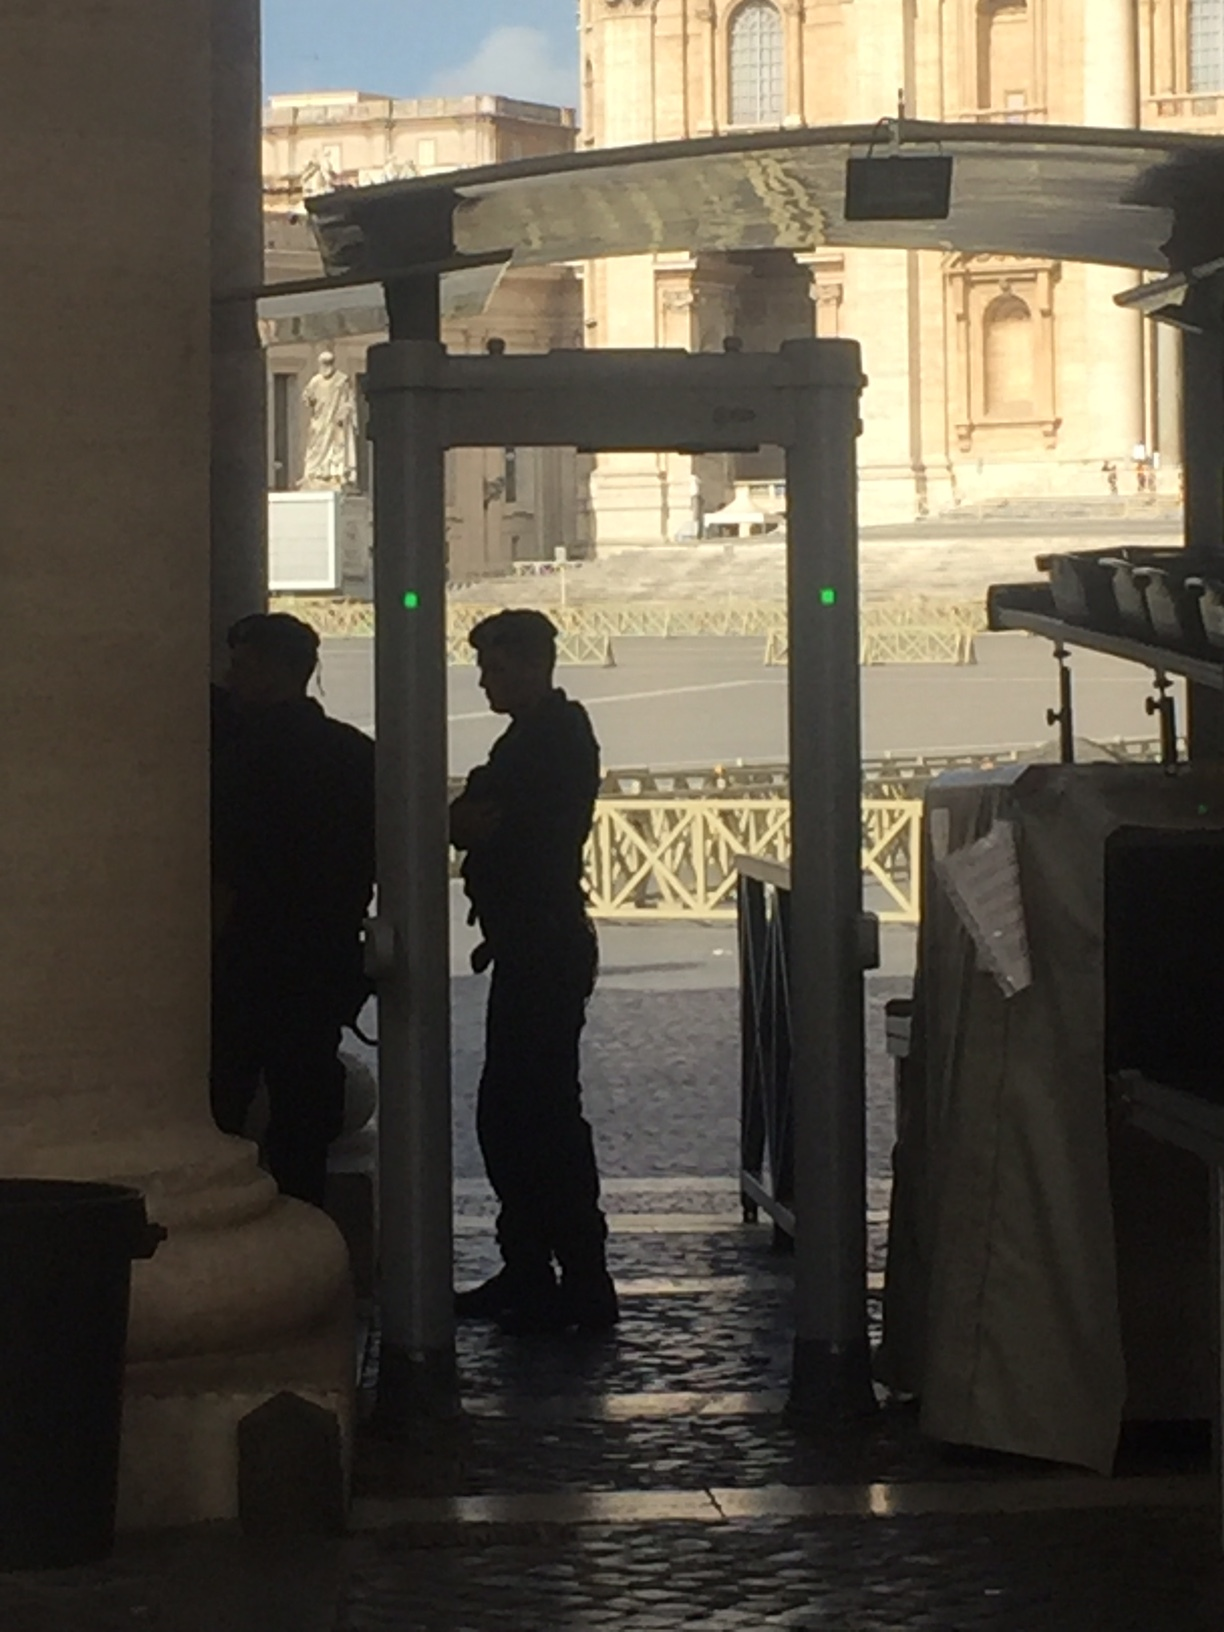 Guards await the screening of the crowds at the Vatican.